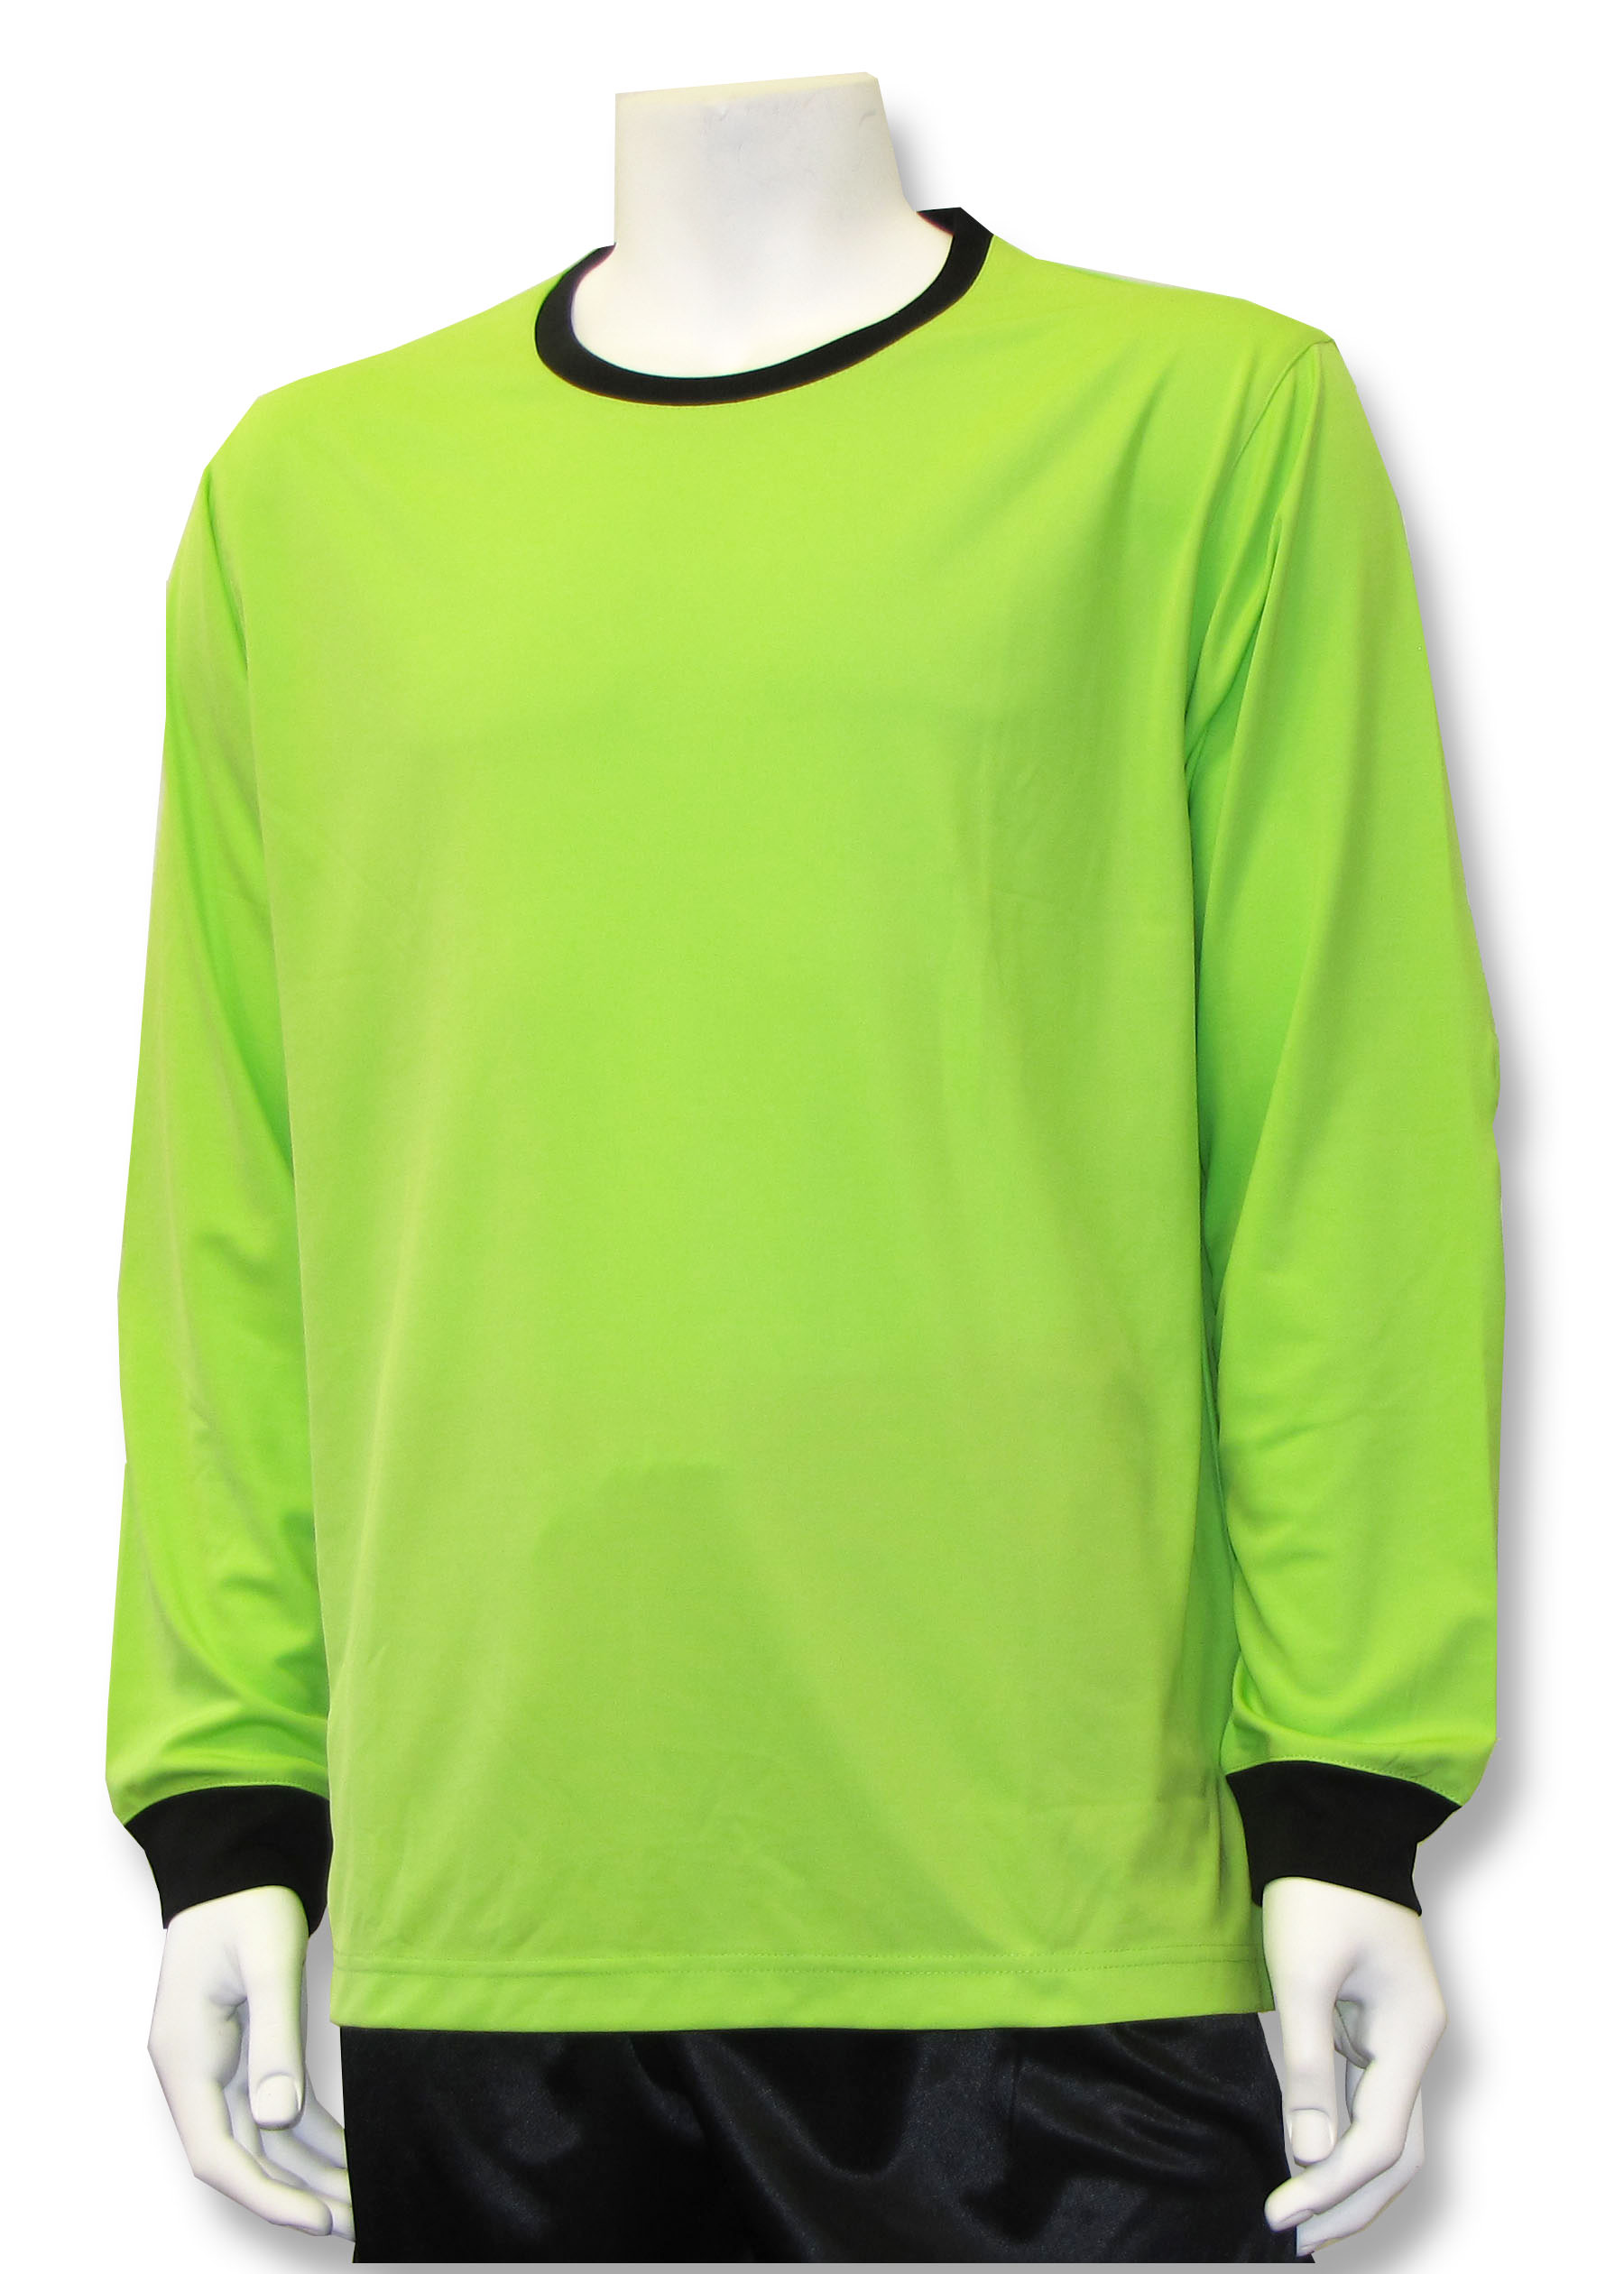 Long sleeve goalkeeper jersey in lime by Code Four Athletics